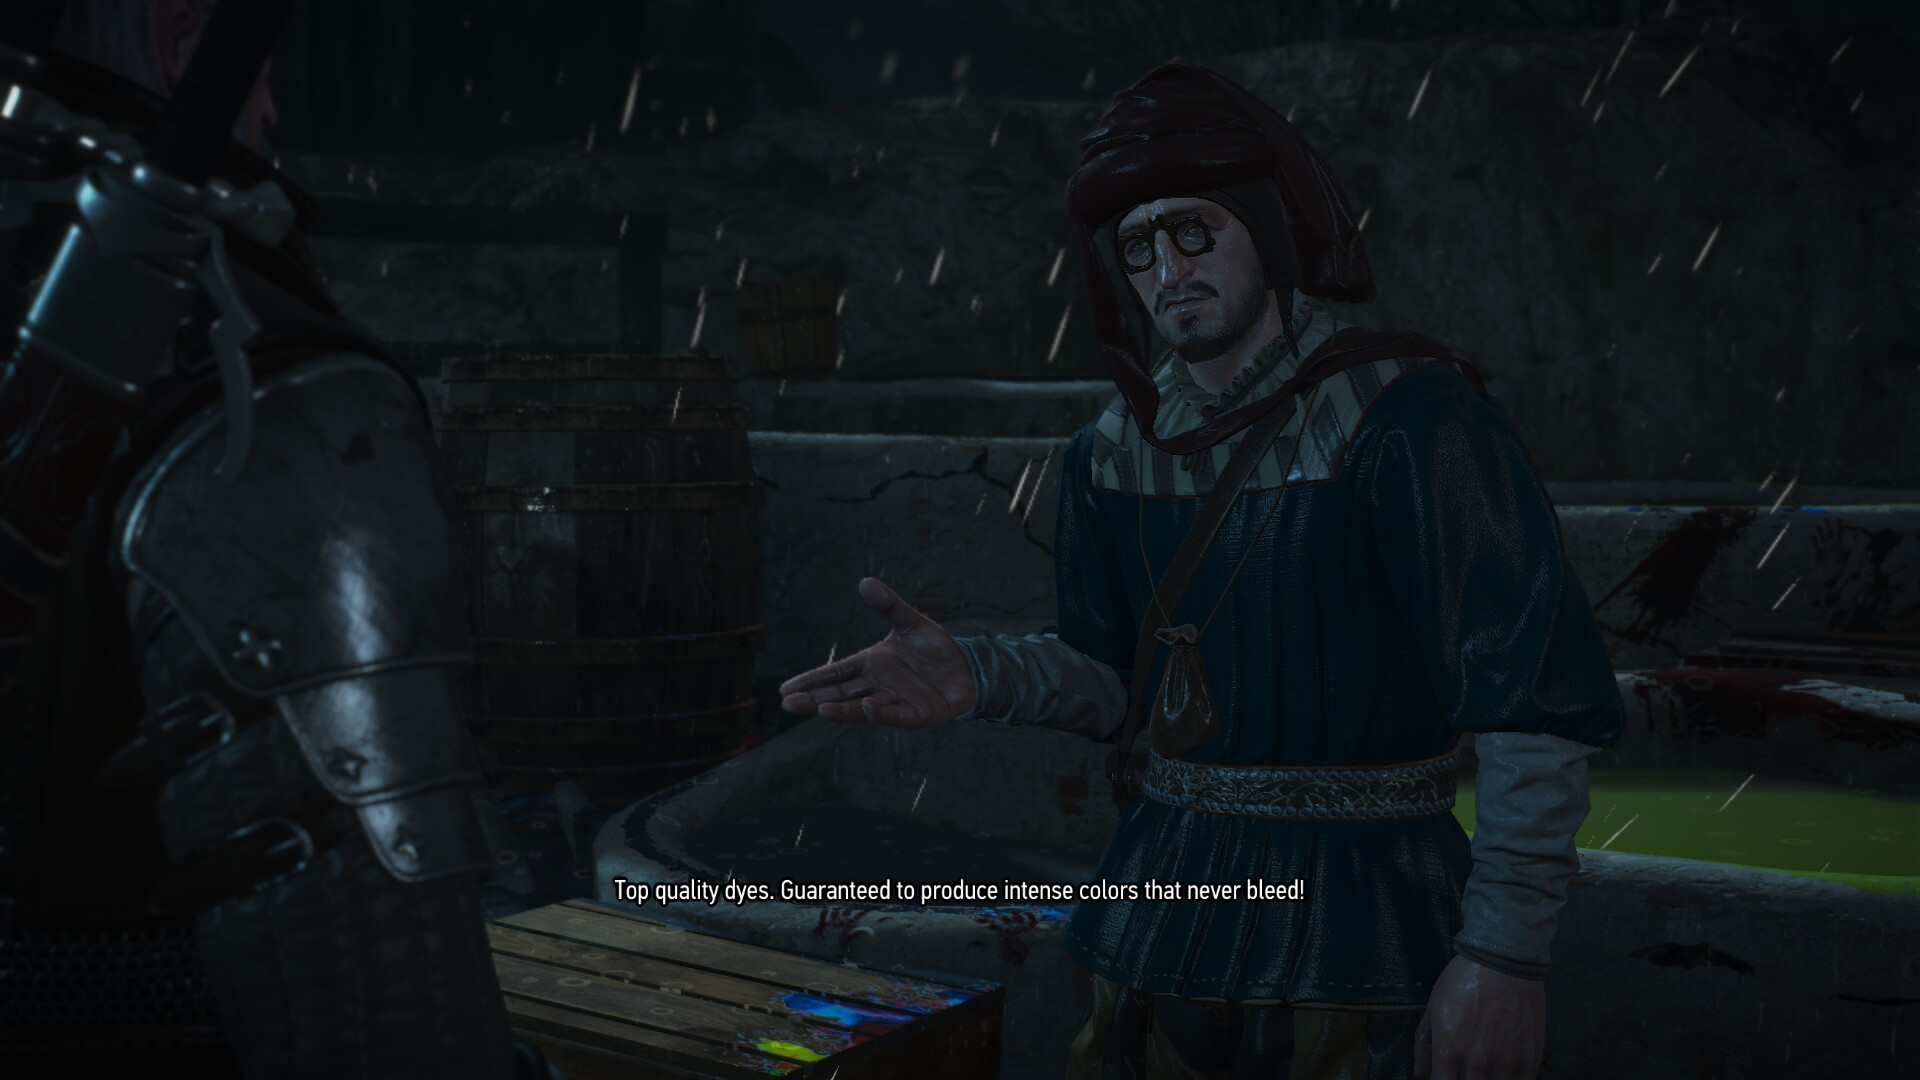 The Witcher 3: Blood and Wine - How to Get Armor Dyes